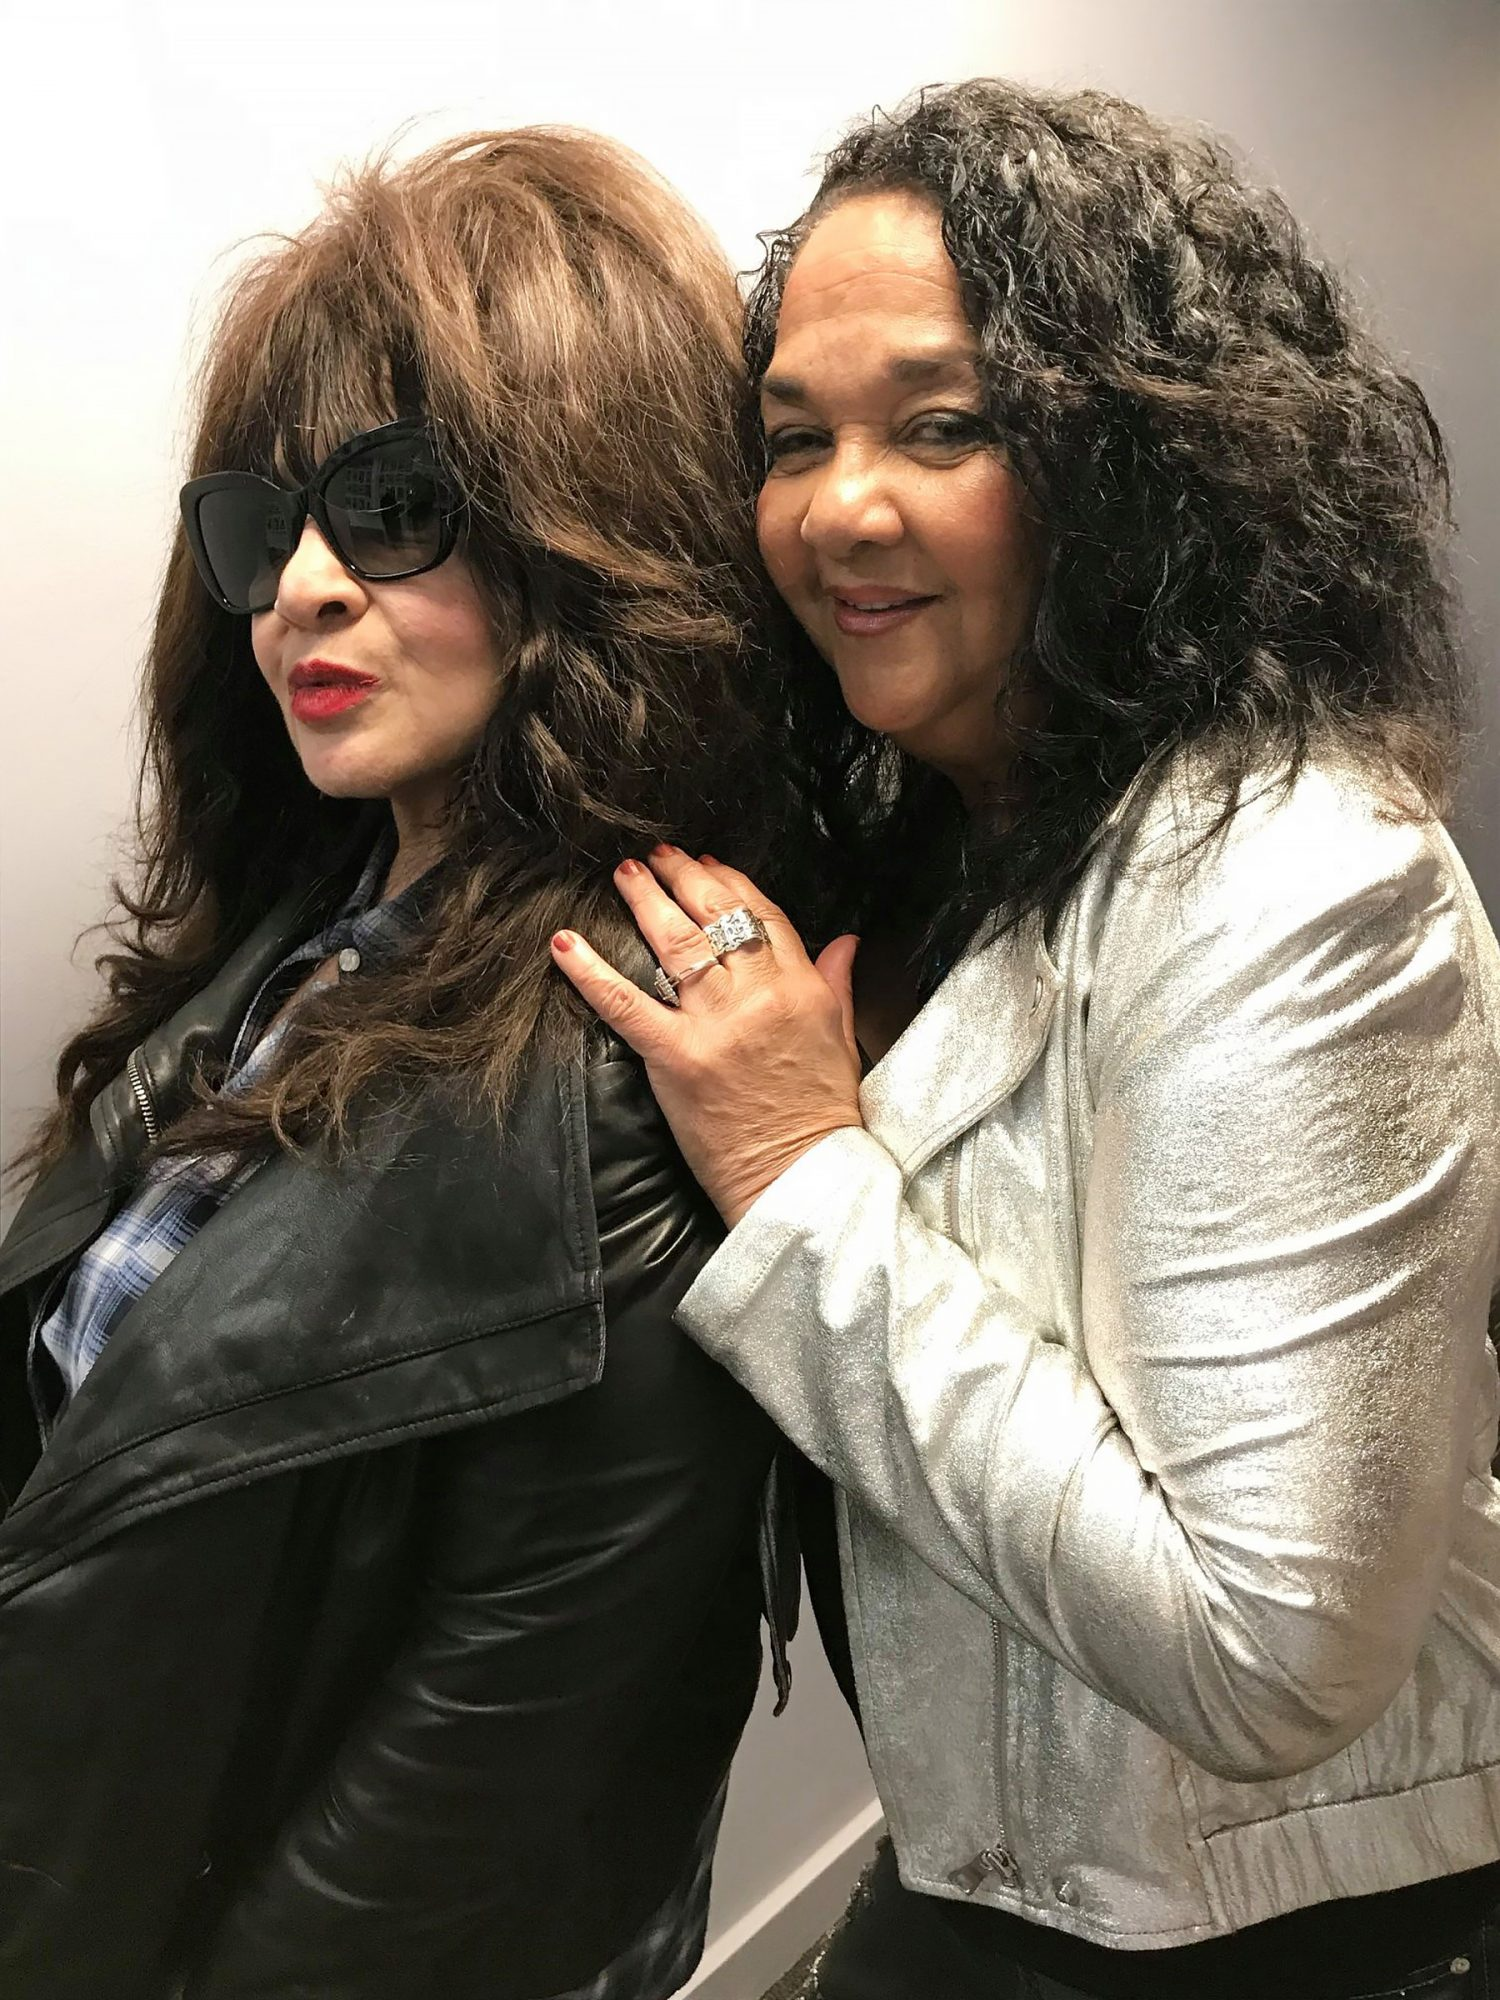 Ronnie Spector reunites with her former Ronettes bandmate (and cousin!) Nedra Ross